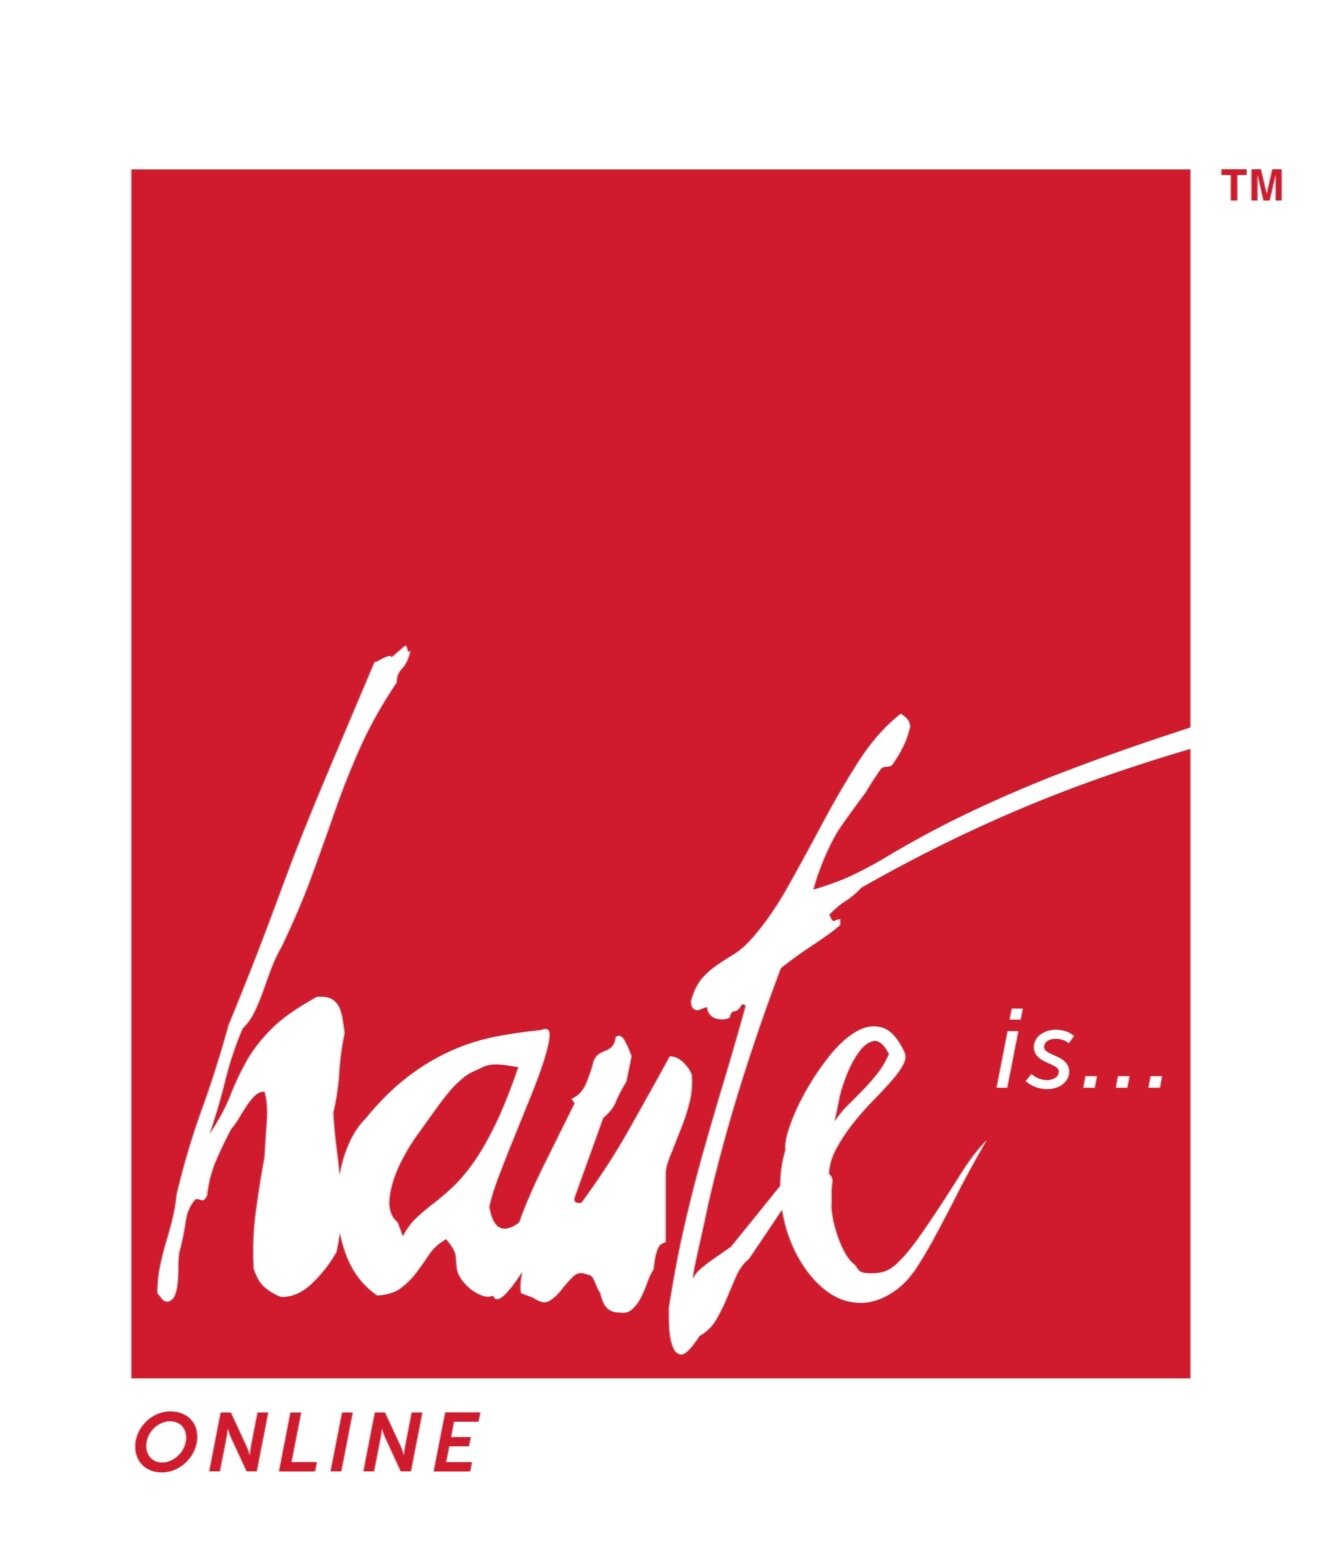 HAUTE IS ONLINE